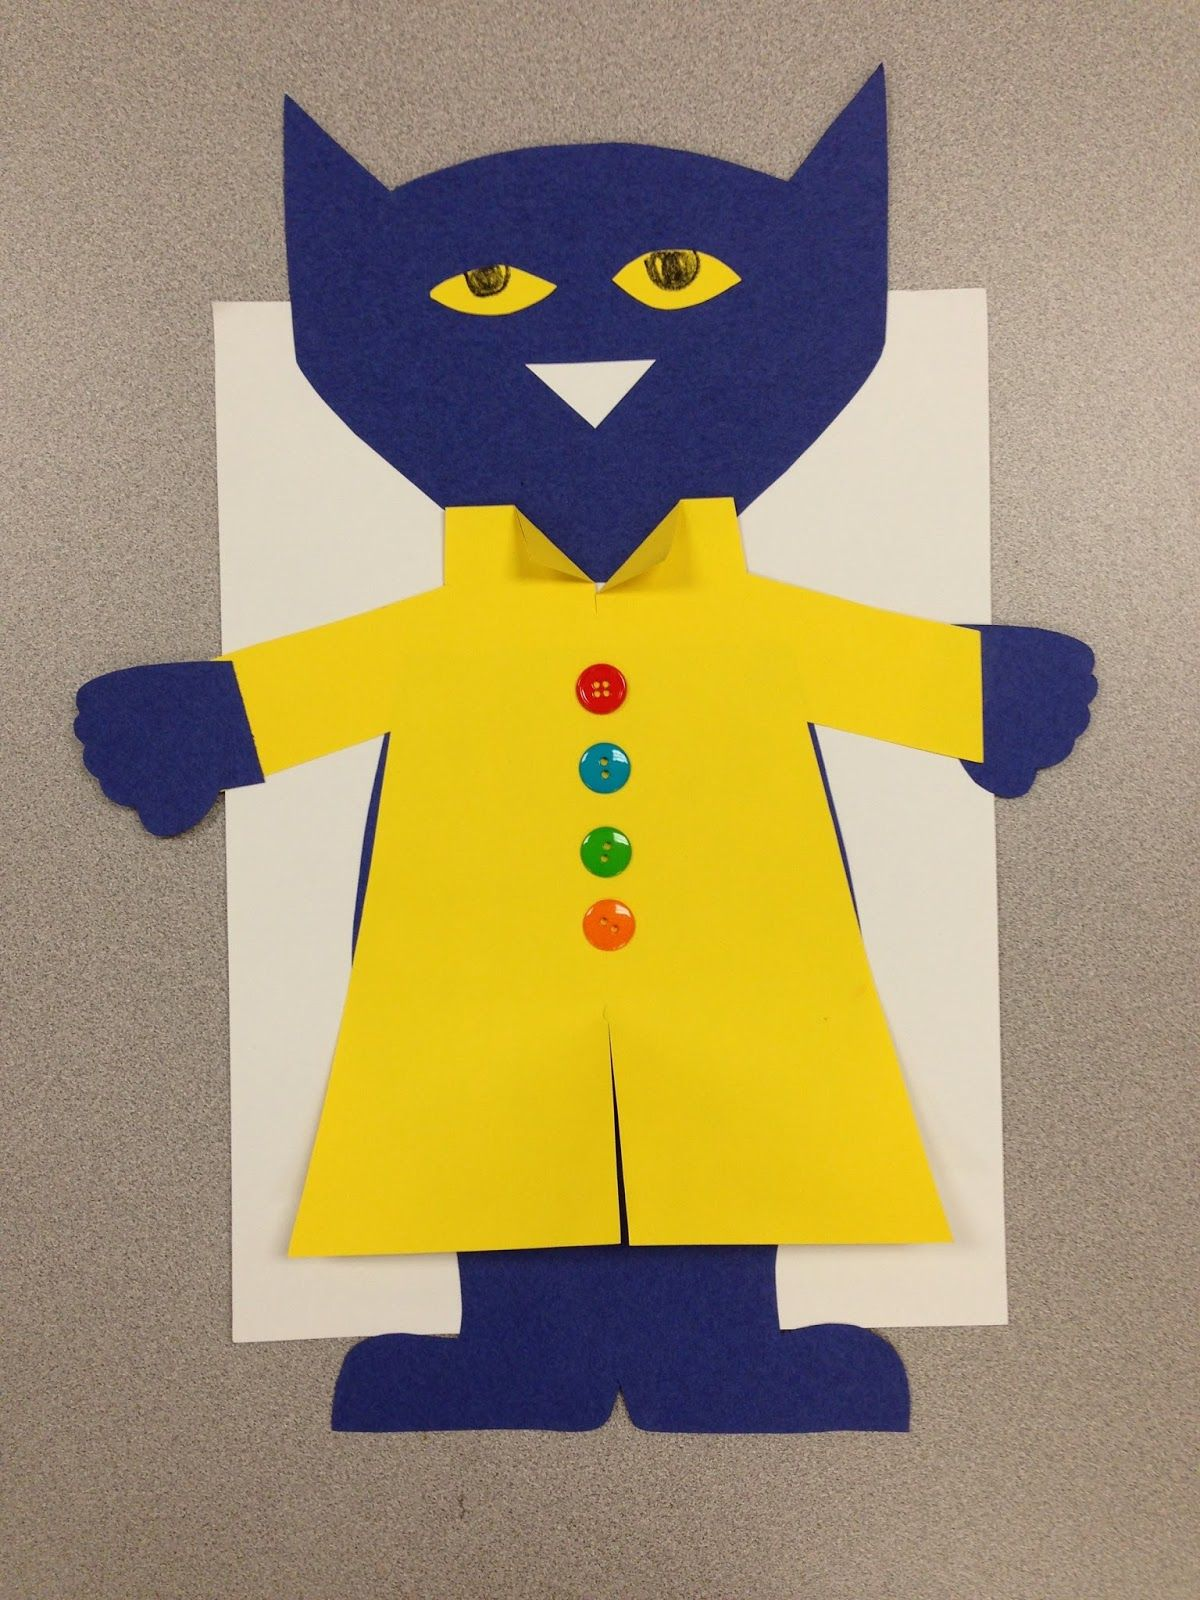 Free Pete The Cat Template Love Pete The Cat Pete The Cat